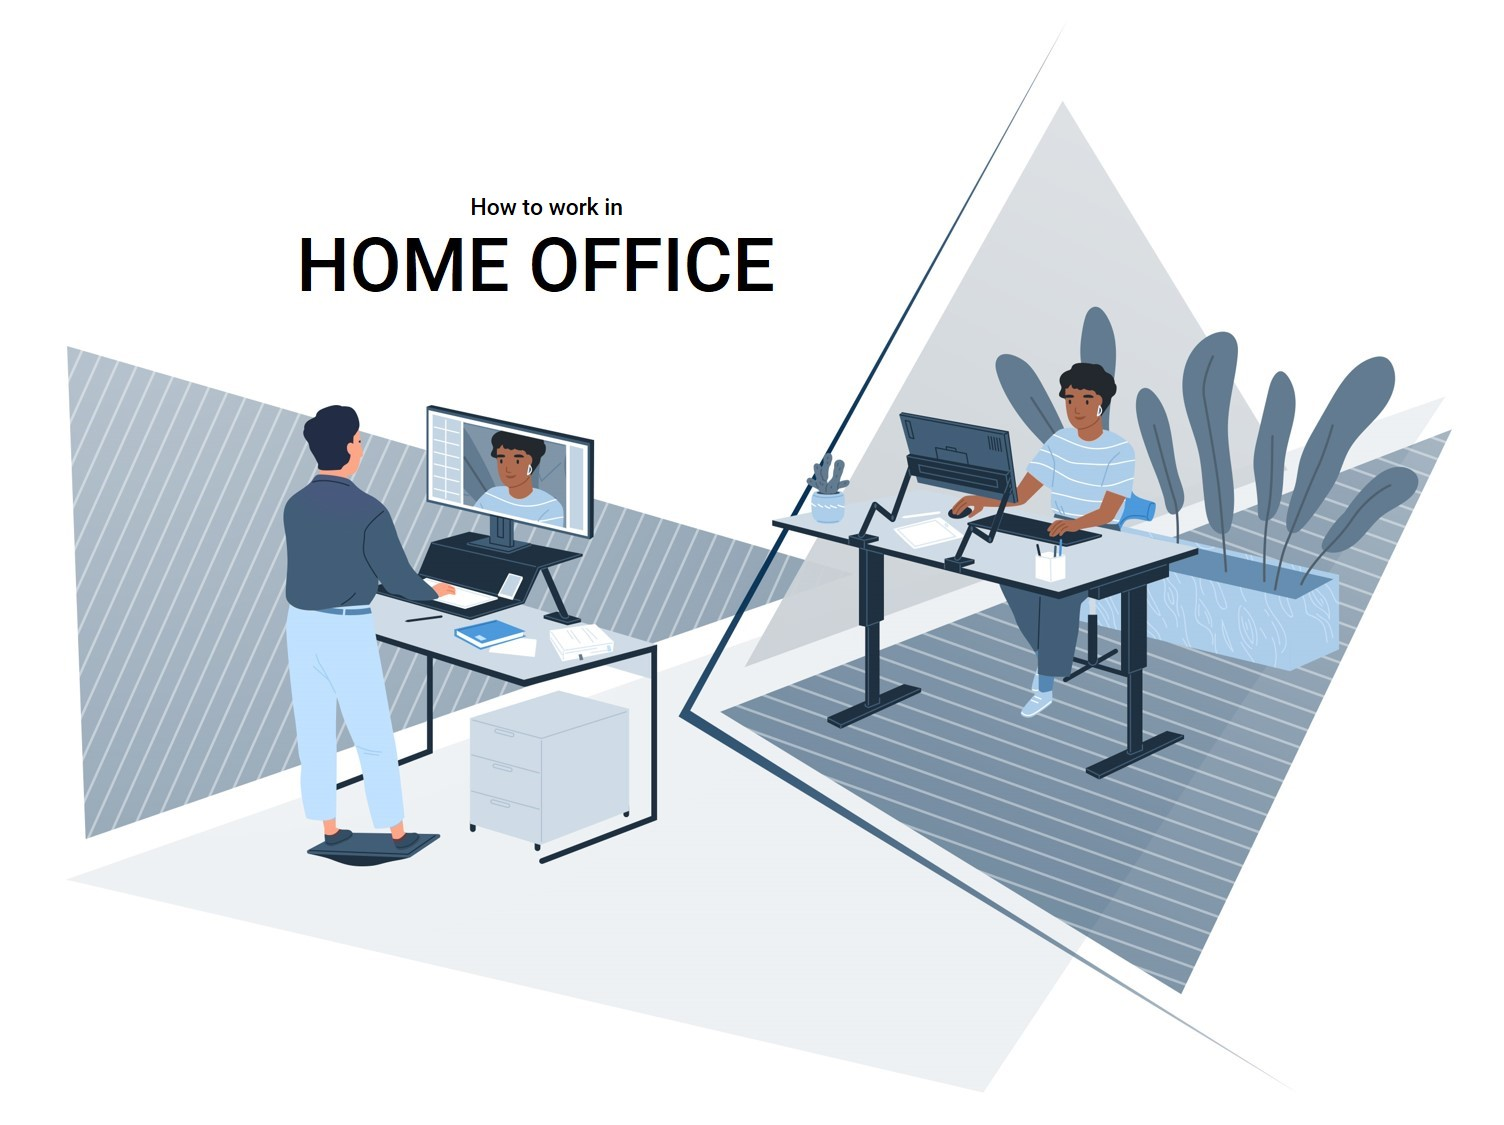 Home Office - Video Conference